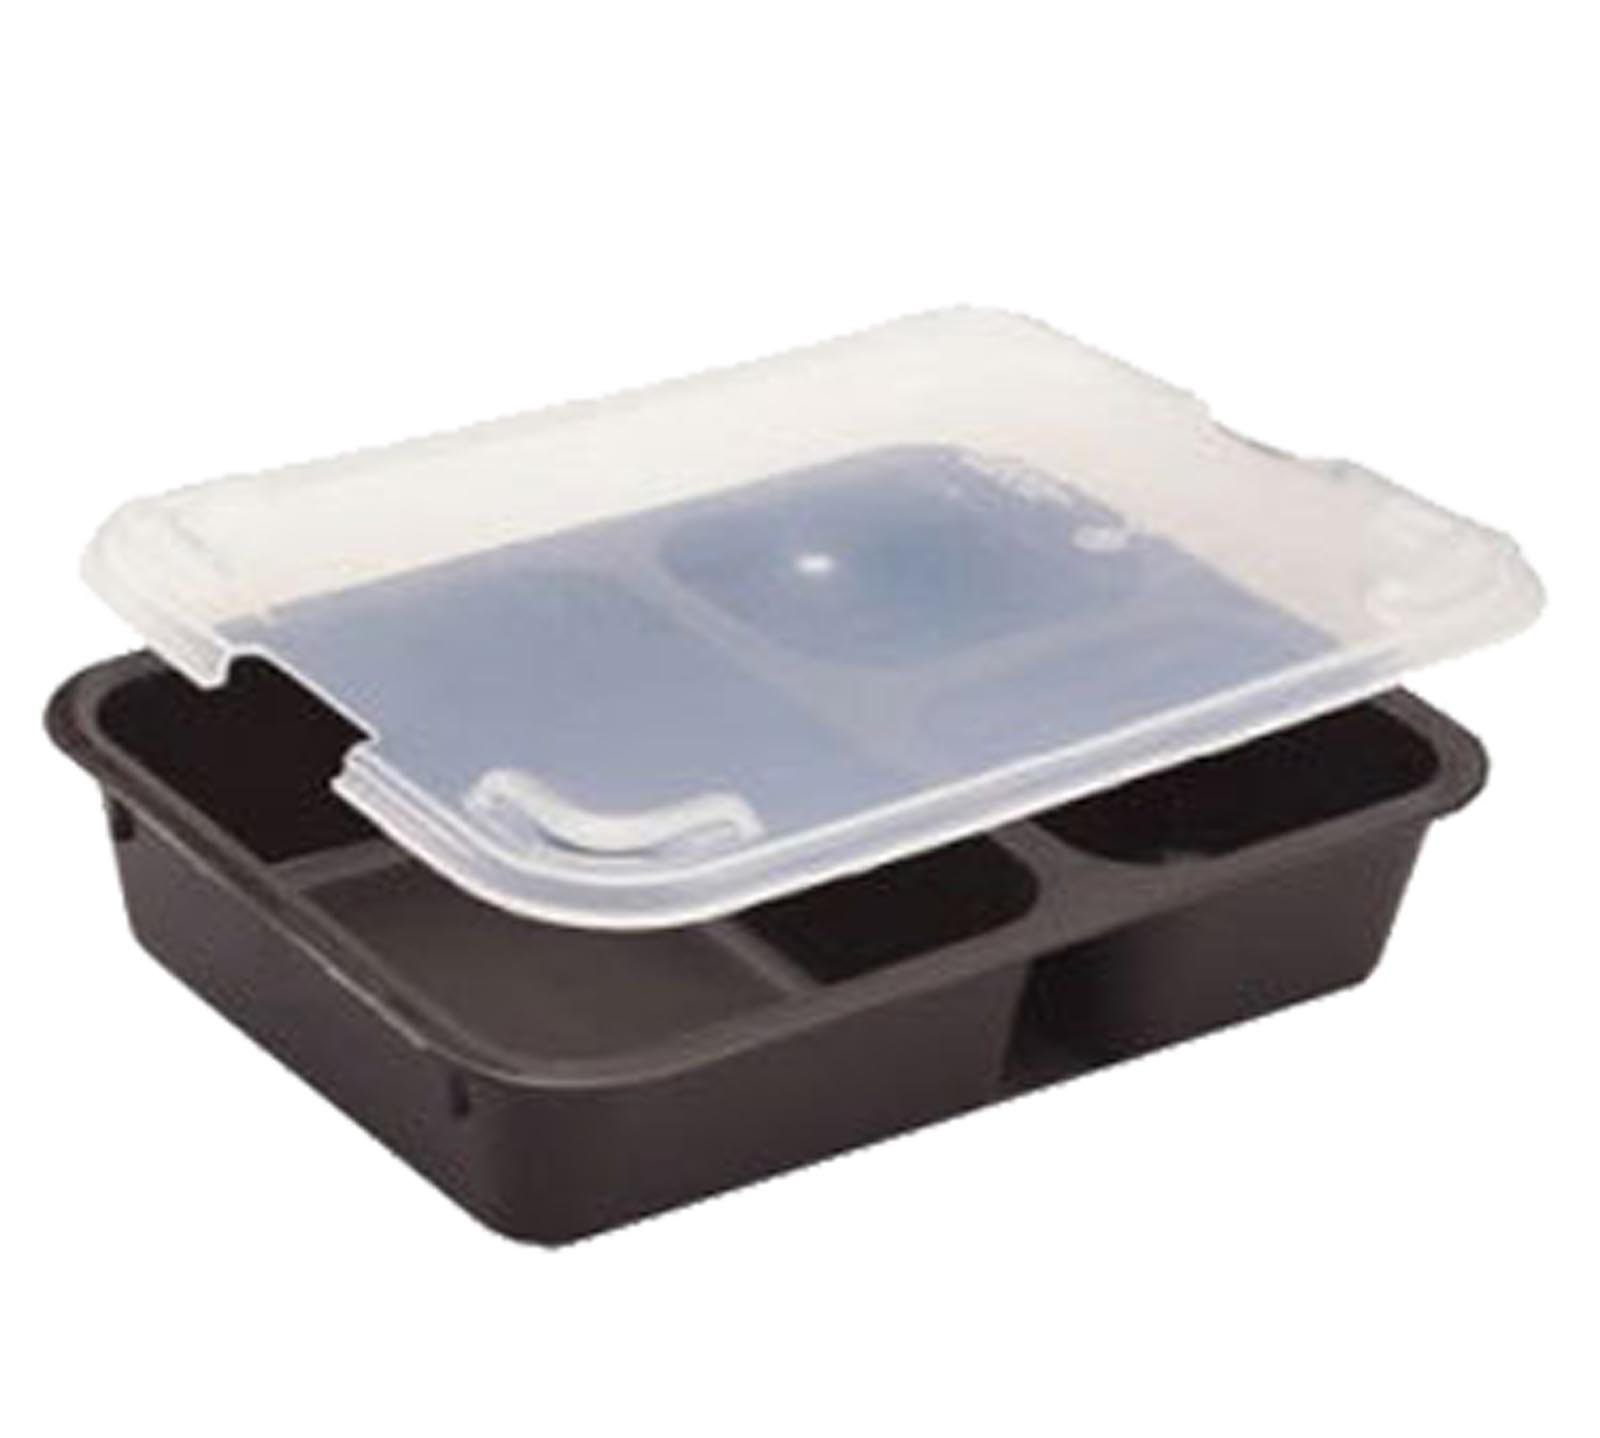 Cambro Tray 3Comp Cr Lid/853Fcp-Trans (853FCPC190) Category: Serving Platters and Trays by Cambro (Image #2)